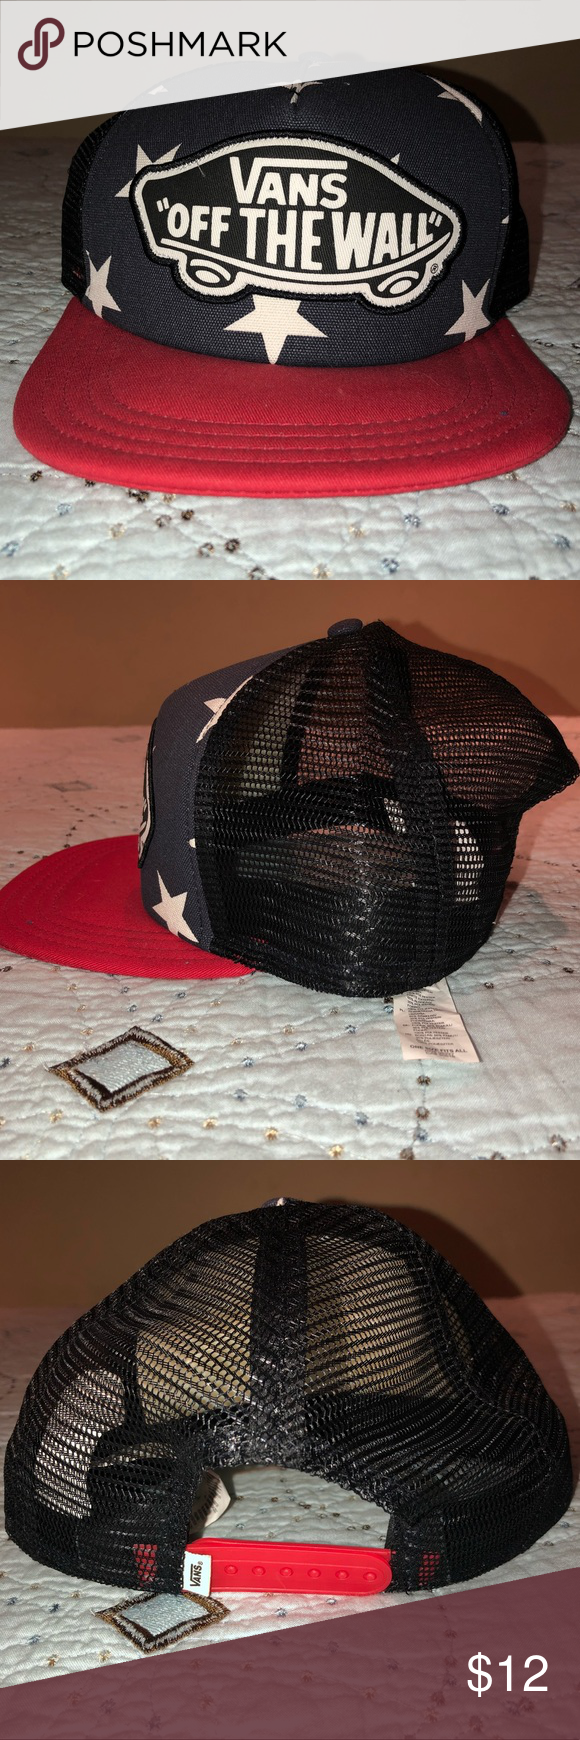 1e238ba550 -Pristine Condition (worn once) -Make an offer  Bundle two or more items  and save 15%! Vans Accessories Hats. Vans American Flag SnapBack ...